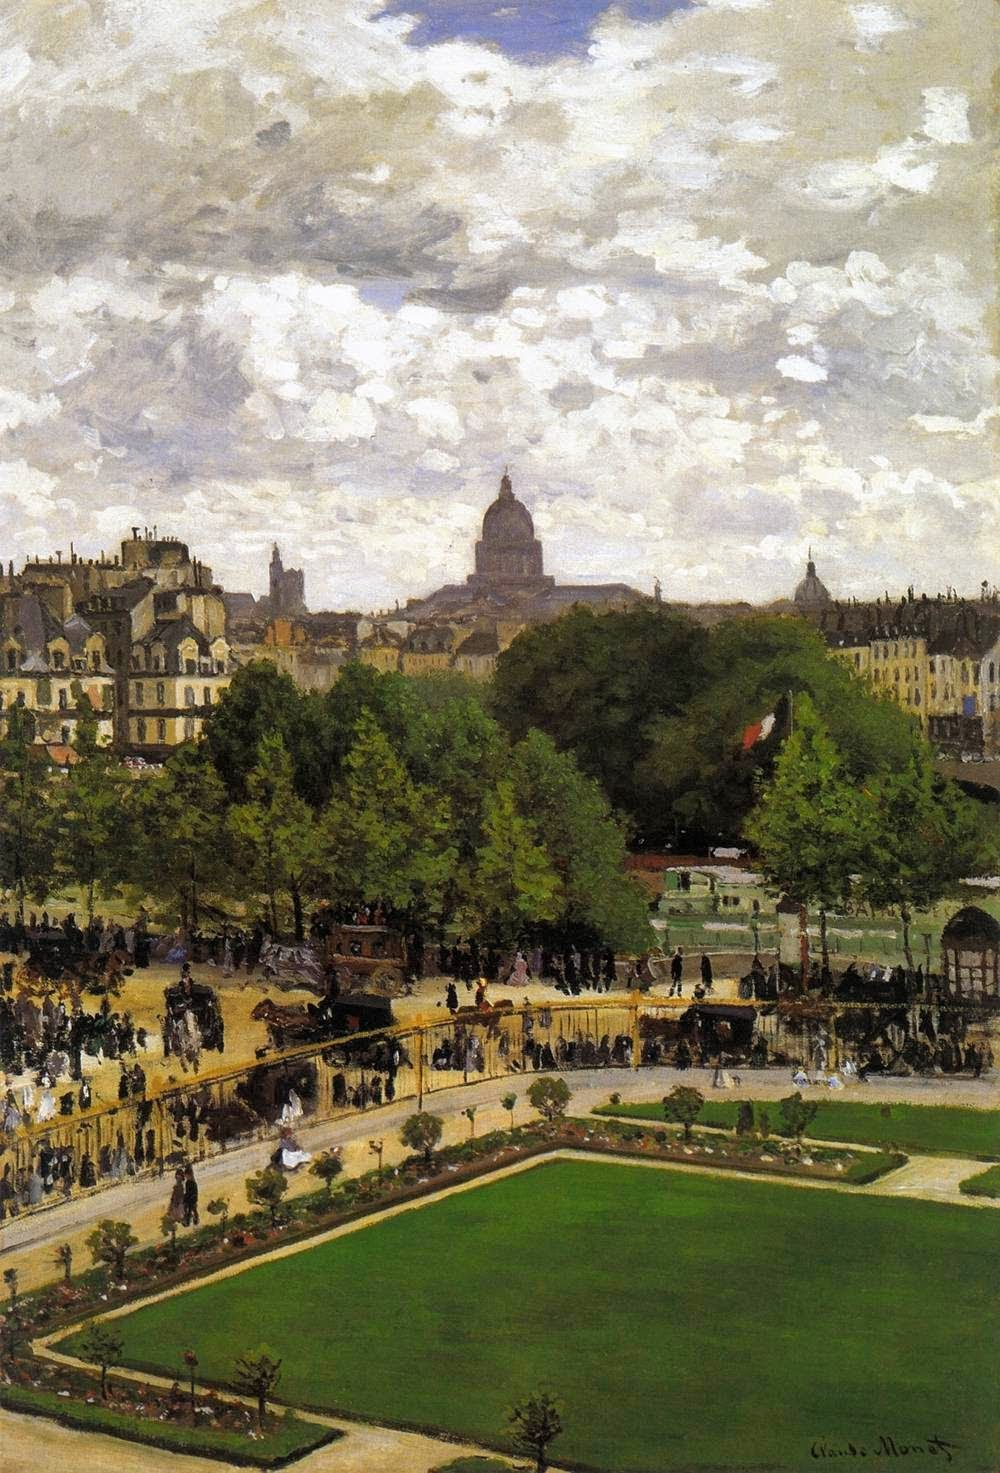 Garden of the Princess (Louvre) by Claude Oscar Monet 1867.